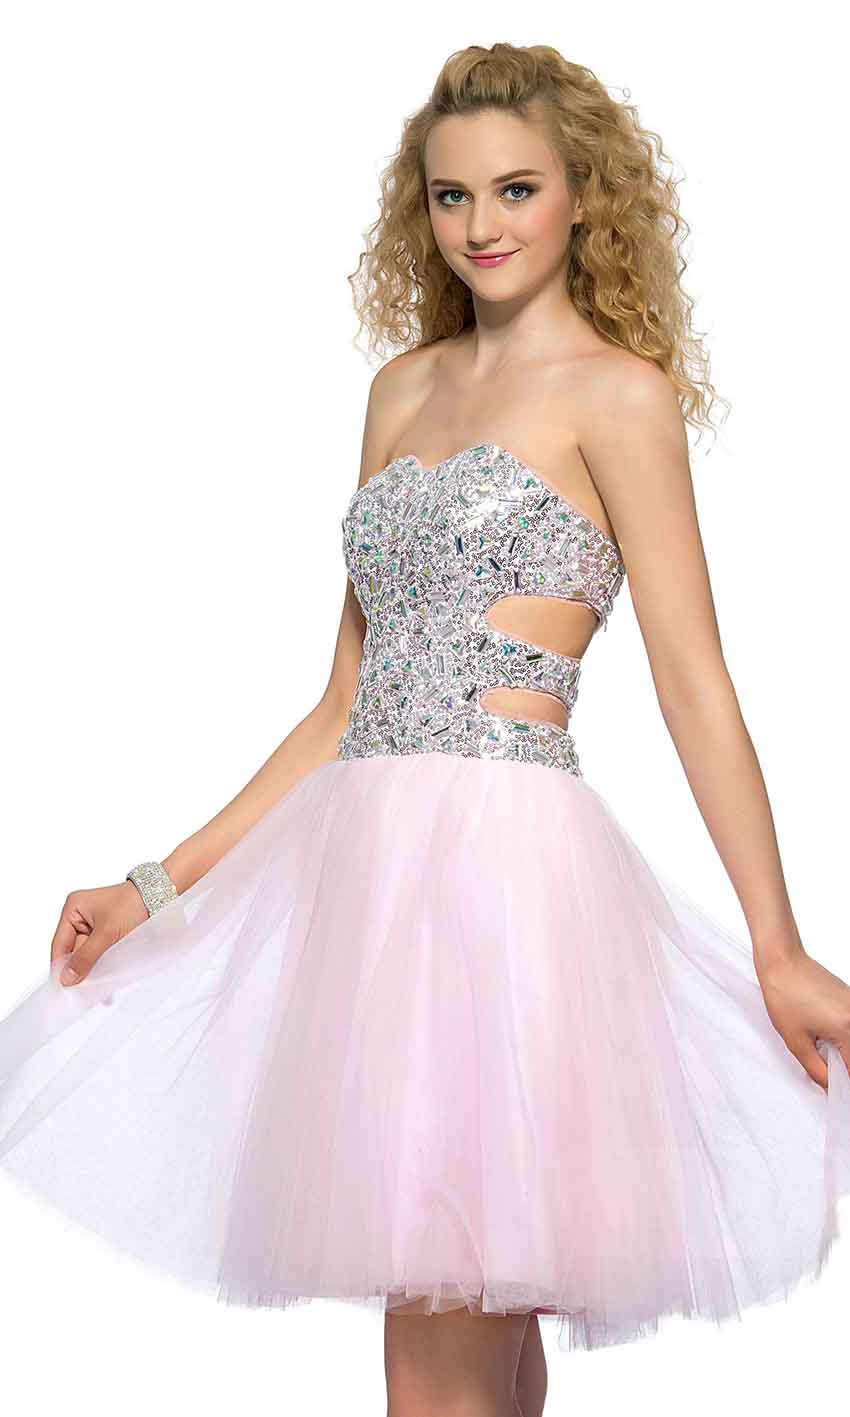 Cut Out Sweetheart Glitter Short Pink Prom Dresses UK KSP394 [KSP394 ...